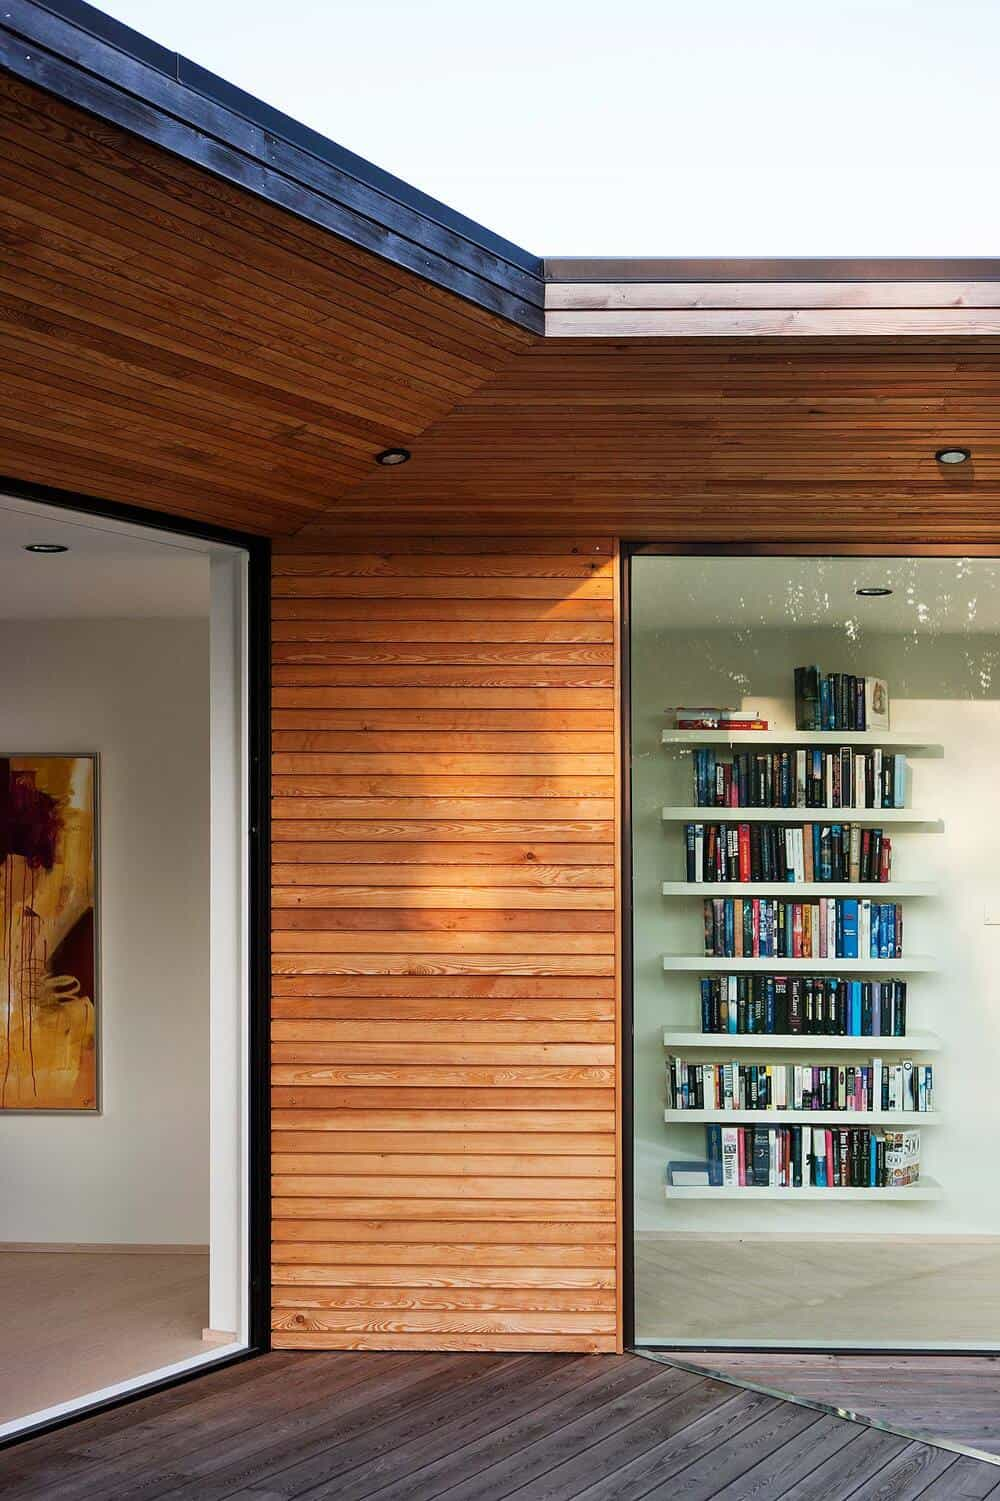 This is a view of the interior wall from outside the glass wall.Here you can see that there are built-in floating bookshelves.